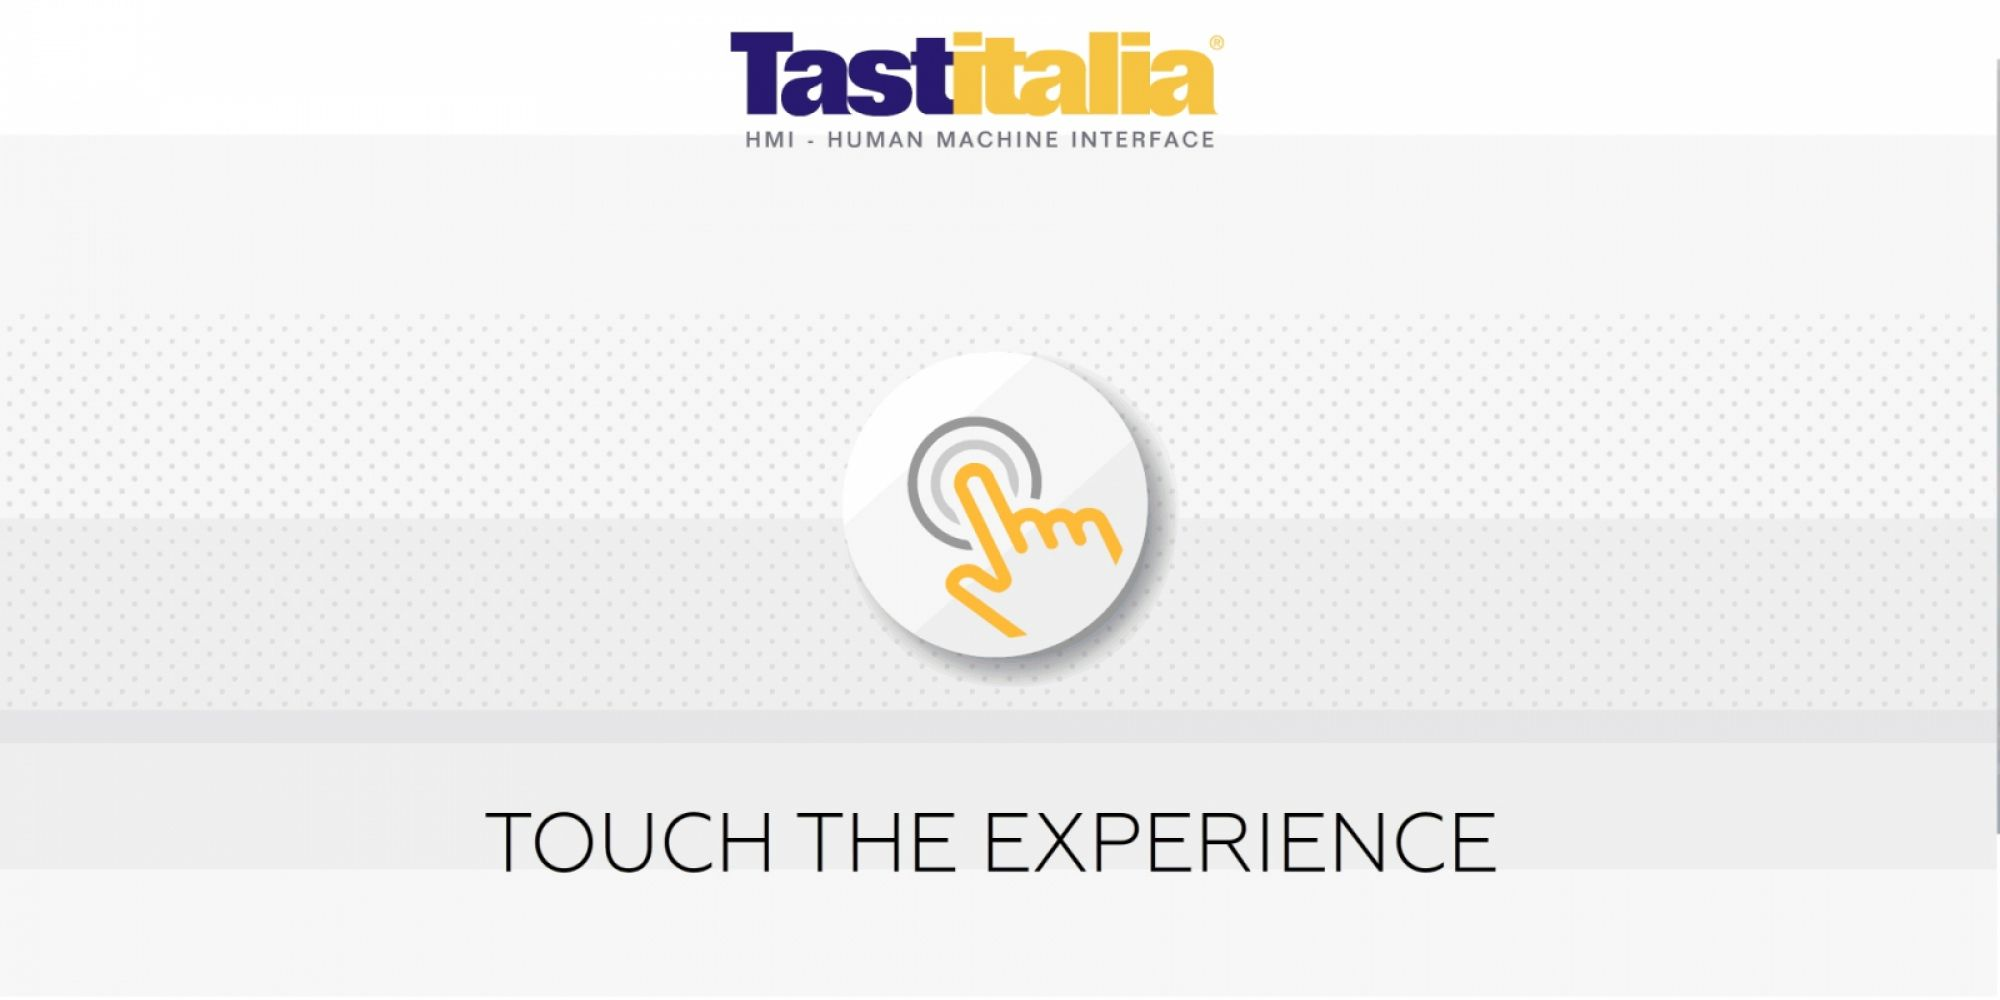 Tastitalia - Touch the experience!